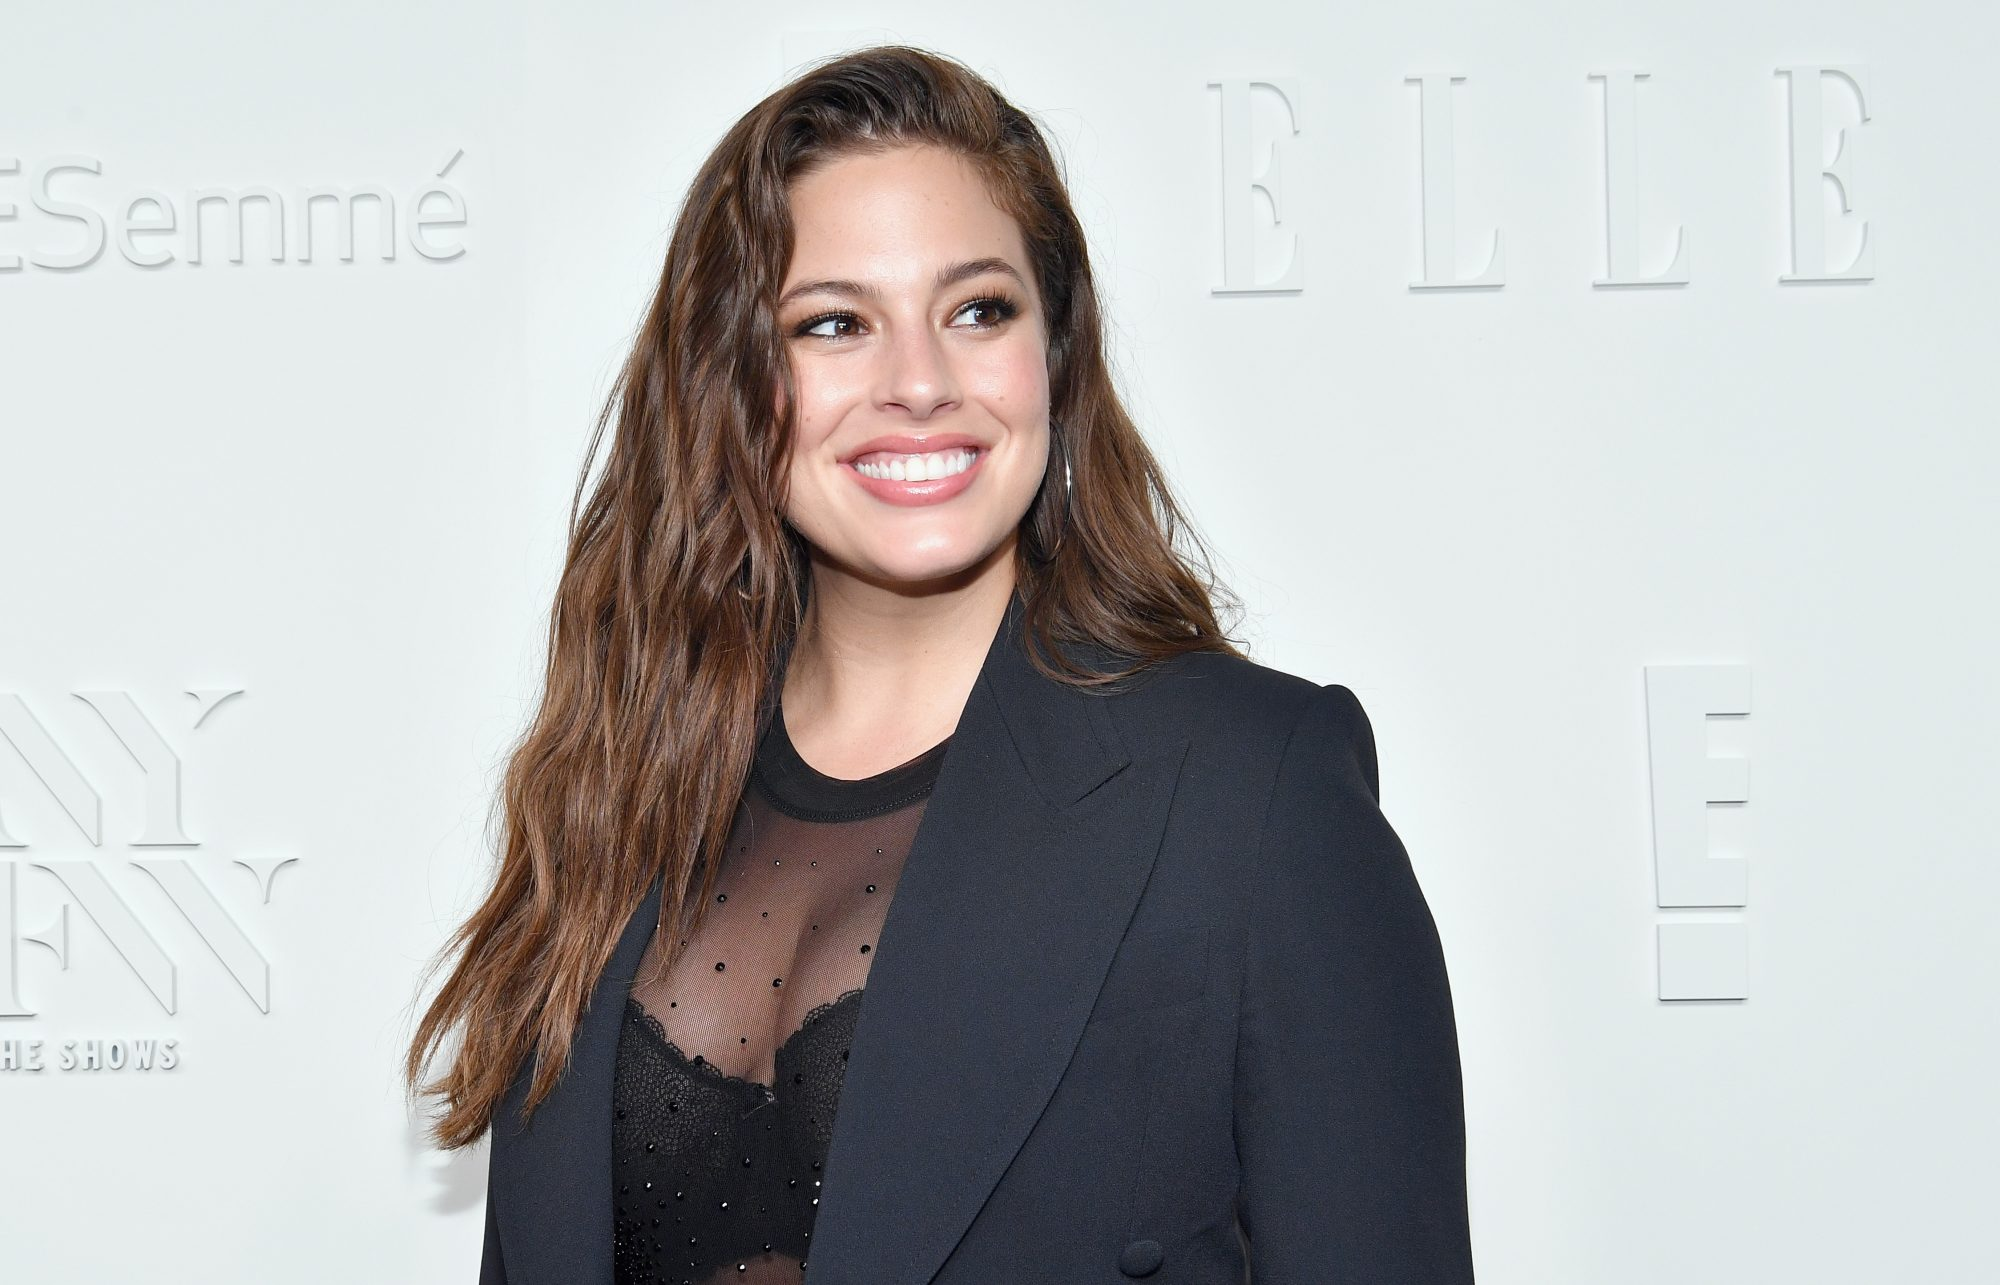 ashley graham body celebration instagram